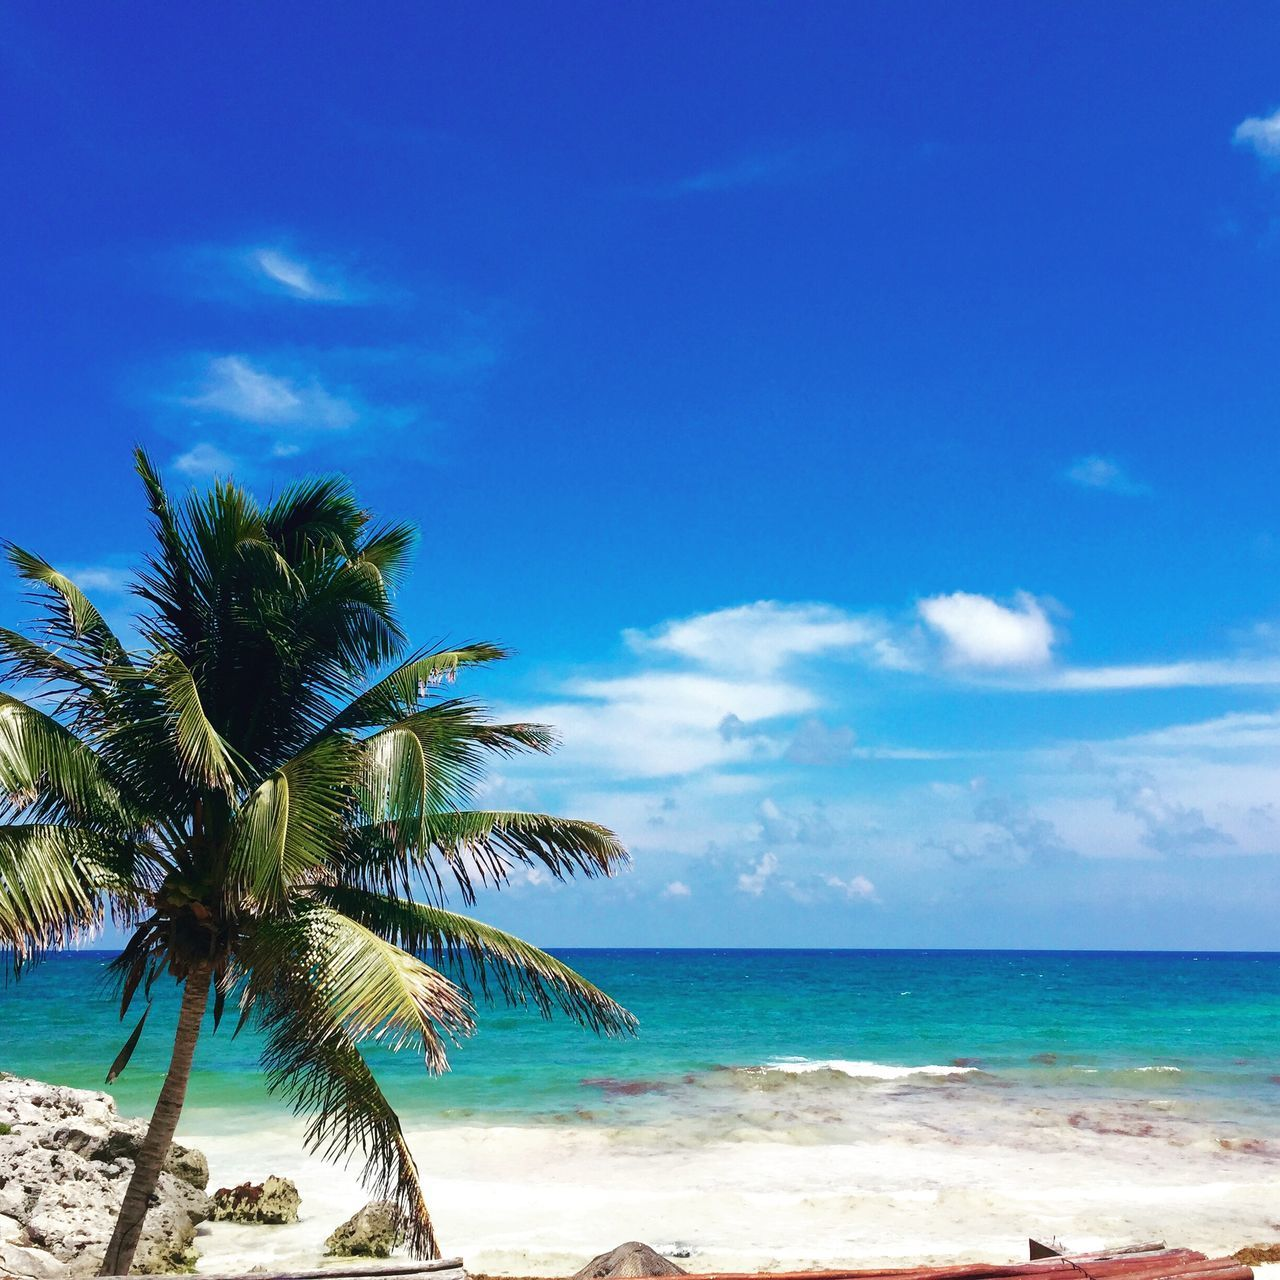 Hotel La Piedra, Tulum, Mexico Beach Beauty In Nature Blue Cloud - Sky Day Horizon Over Water Nature Outdoors Palm Tree Sand Scenics Sea Sky Tranquil Scene Tranquility Tree Tulum Tulum , Rivera Maya. Tulum Beach Water